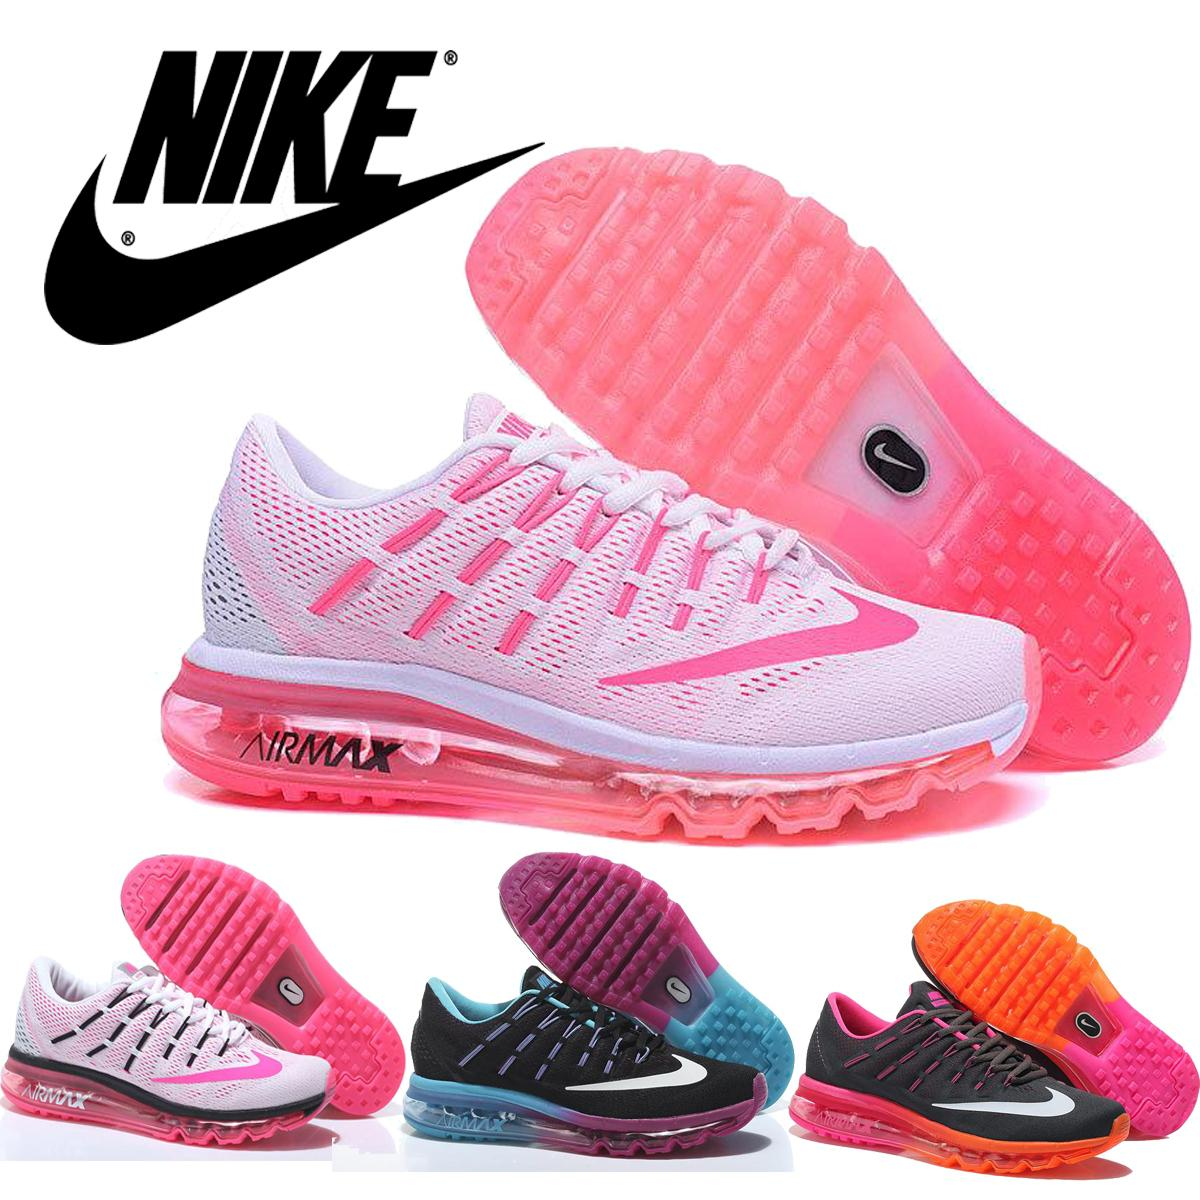 Nike Air Max 2016 Womens Running Shoe